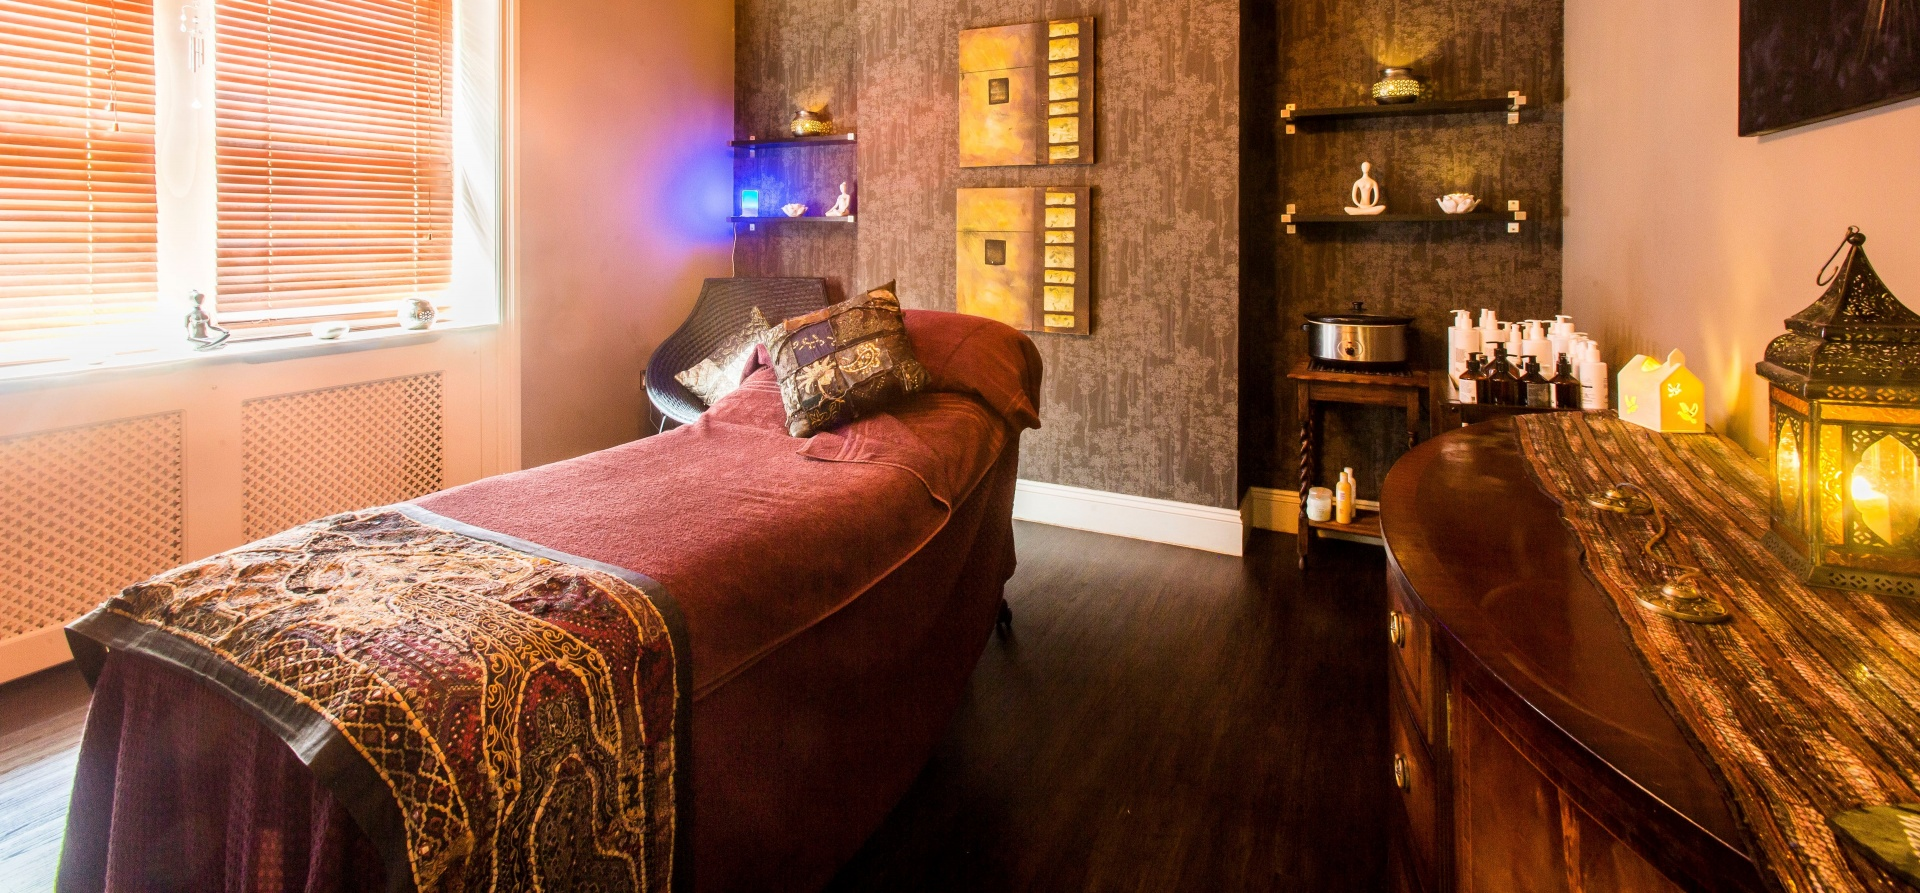 West Yorkshire Luxurious Massage for Two-2